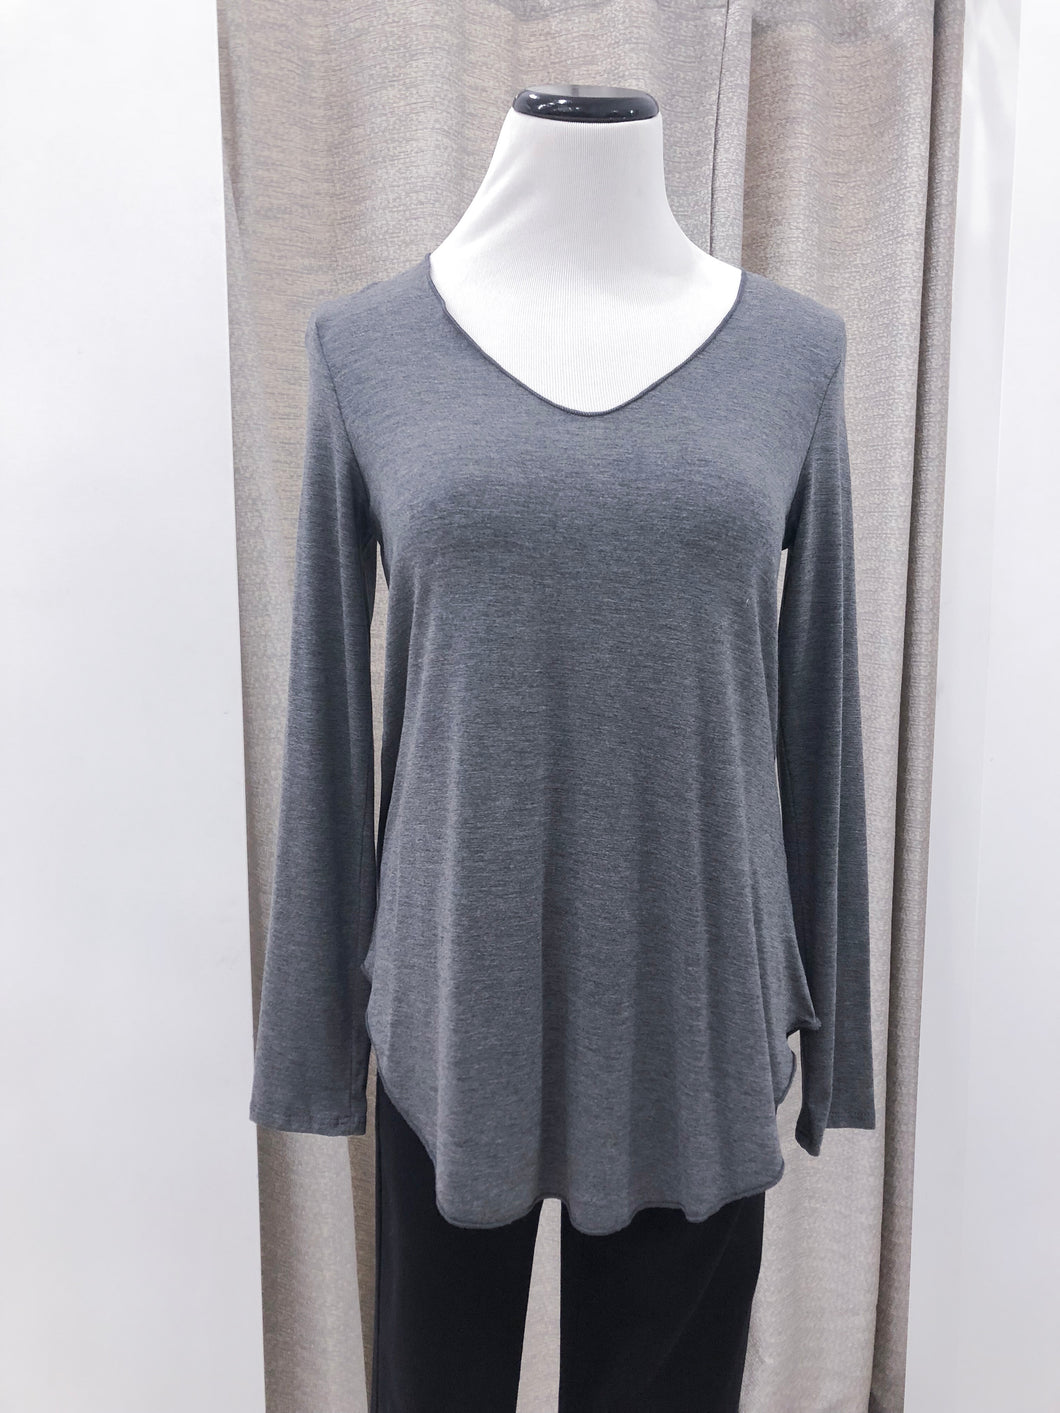 Everyday Long Sleeve Tee in Charcoal